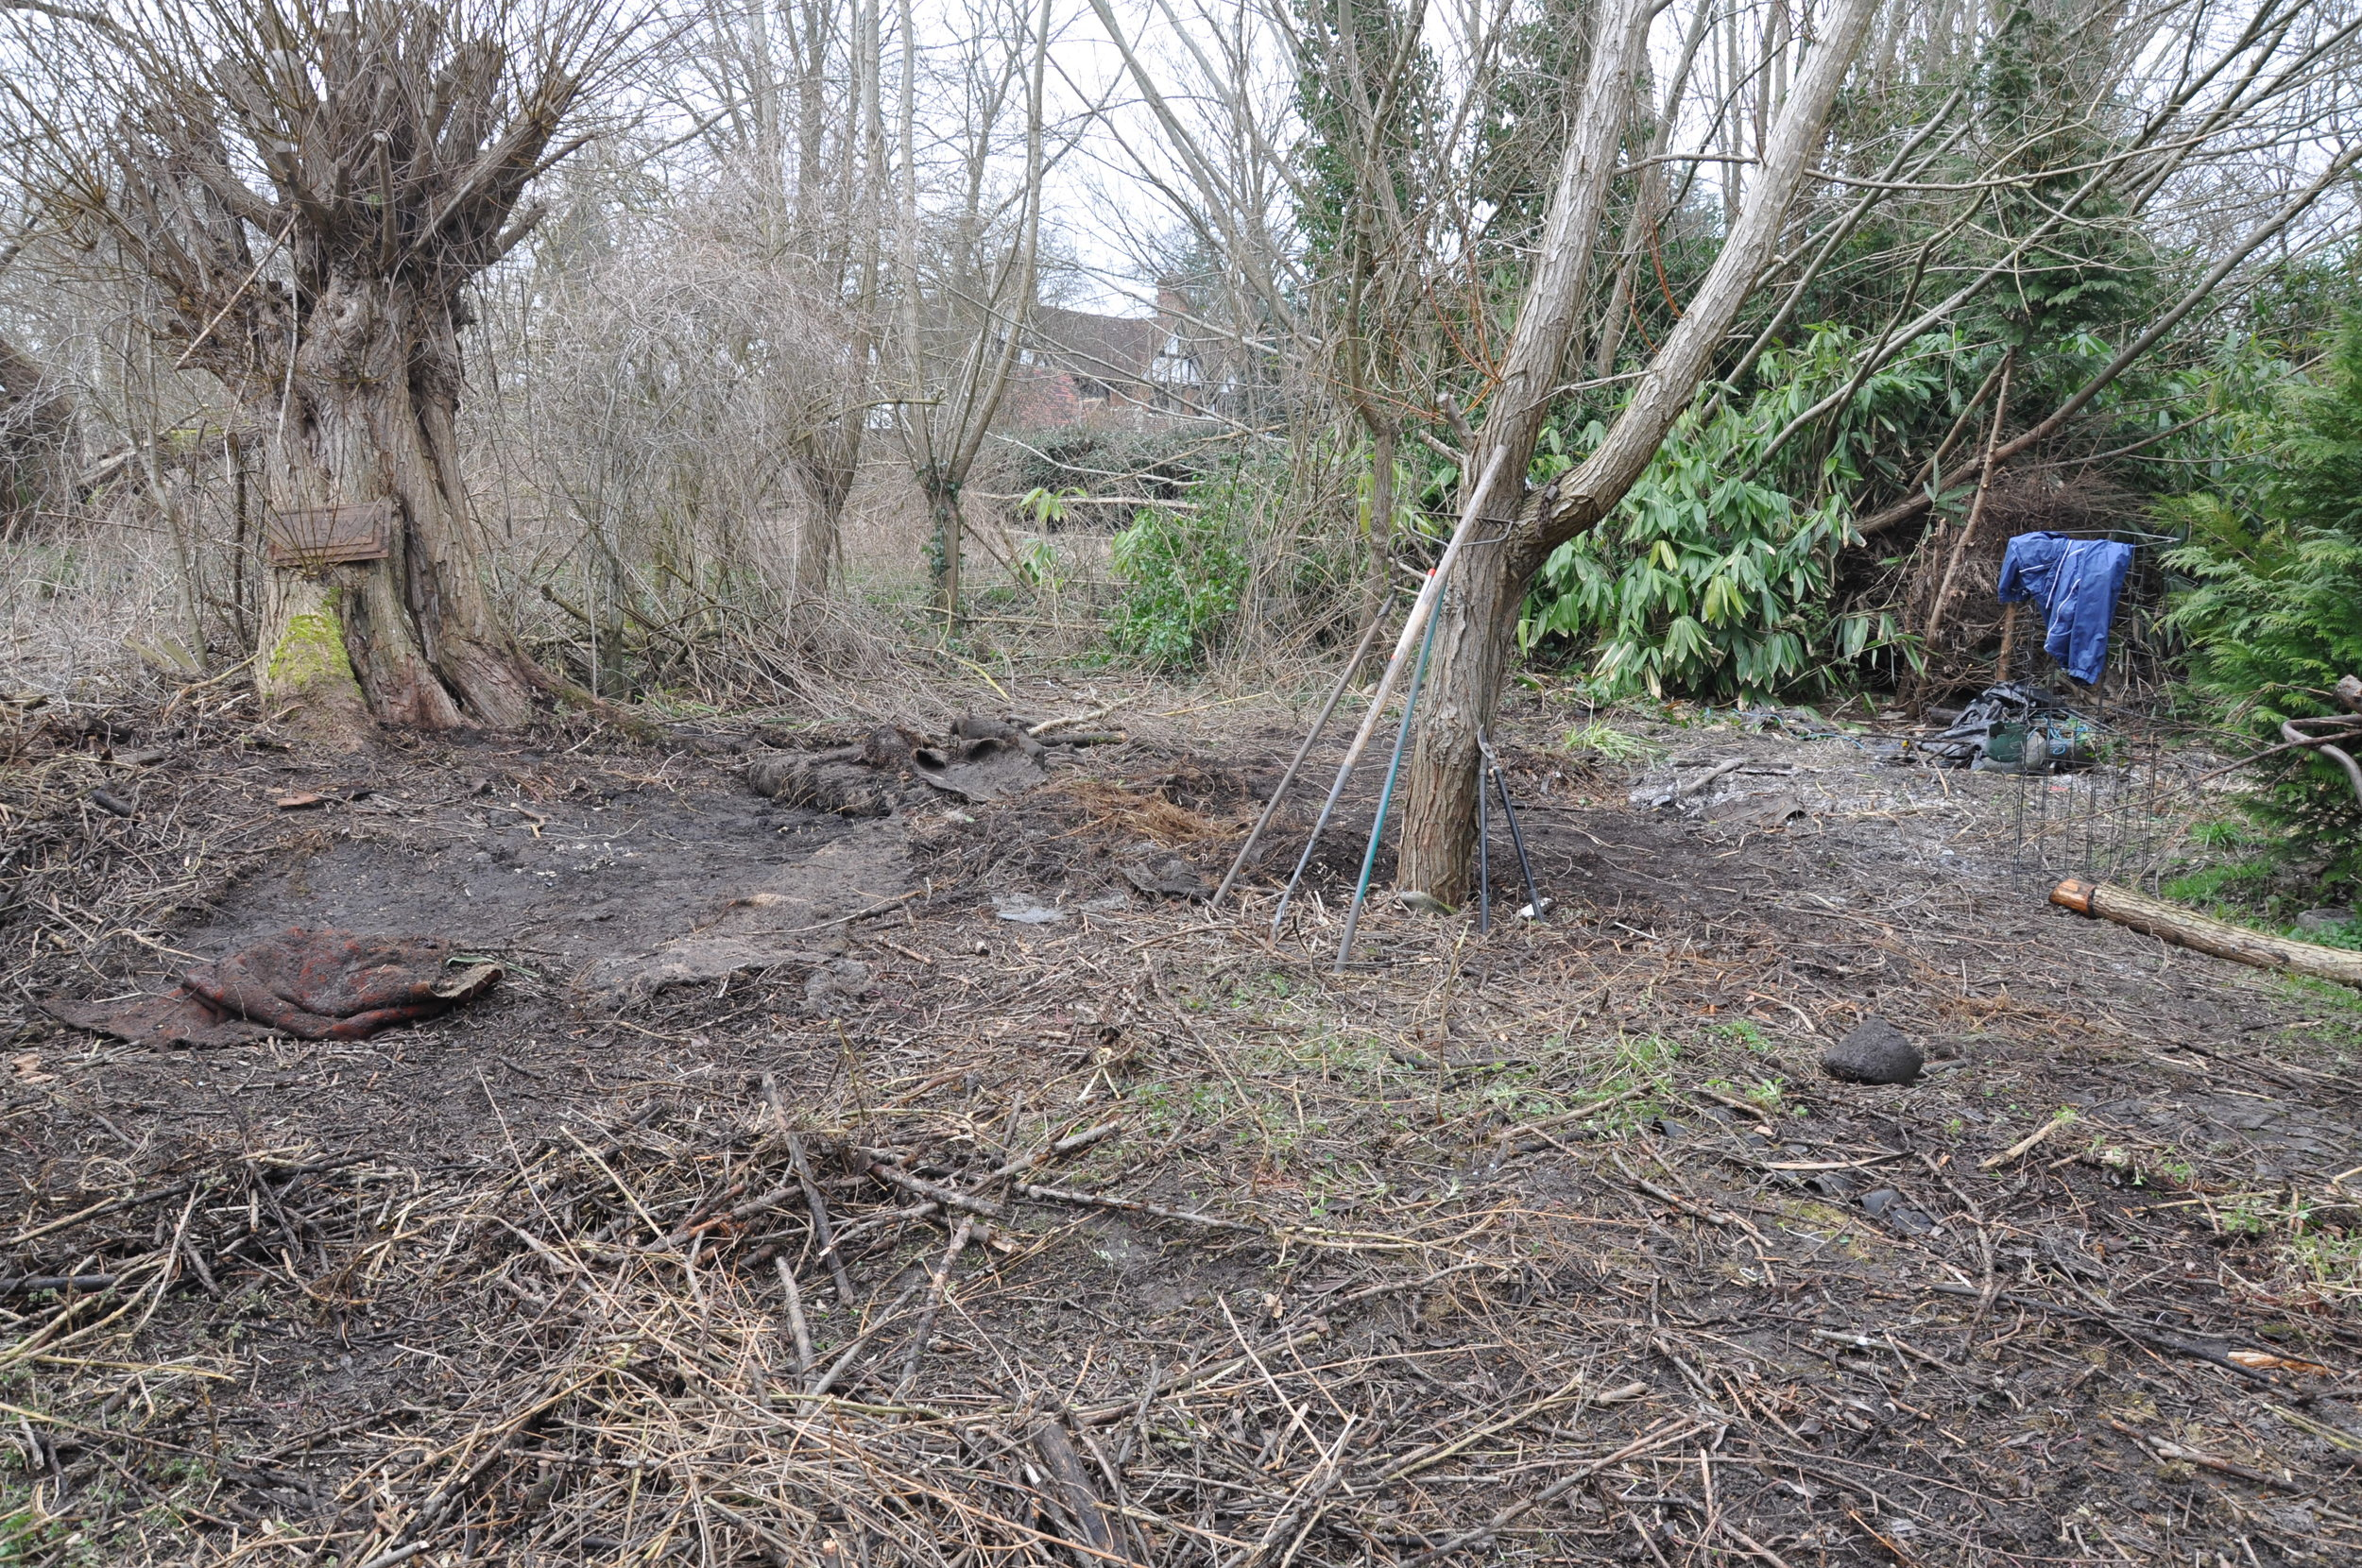 The 'secluded garden' in process of being cleared...still a work in progress...